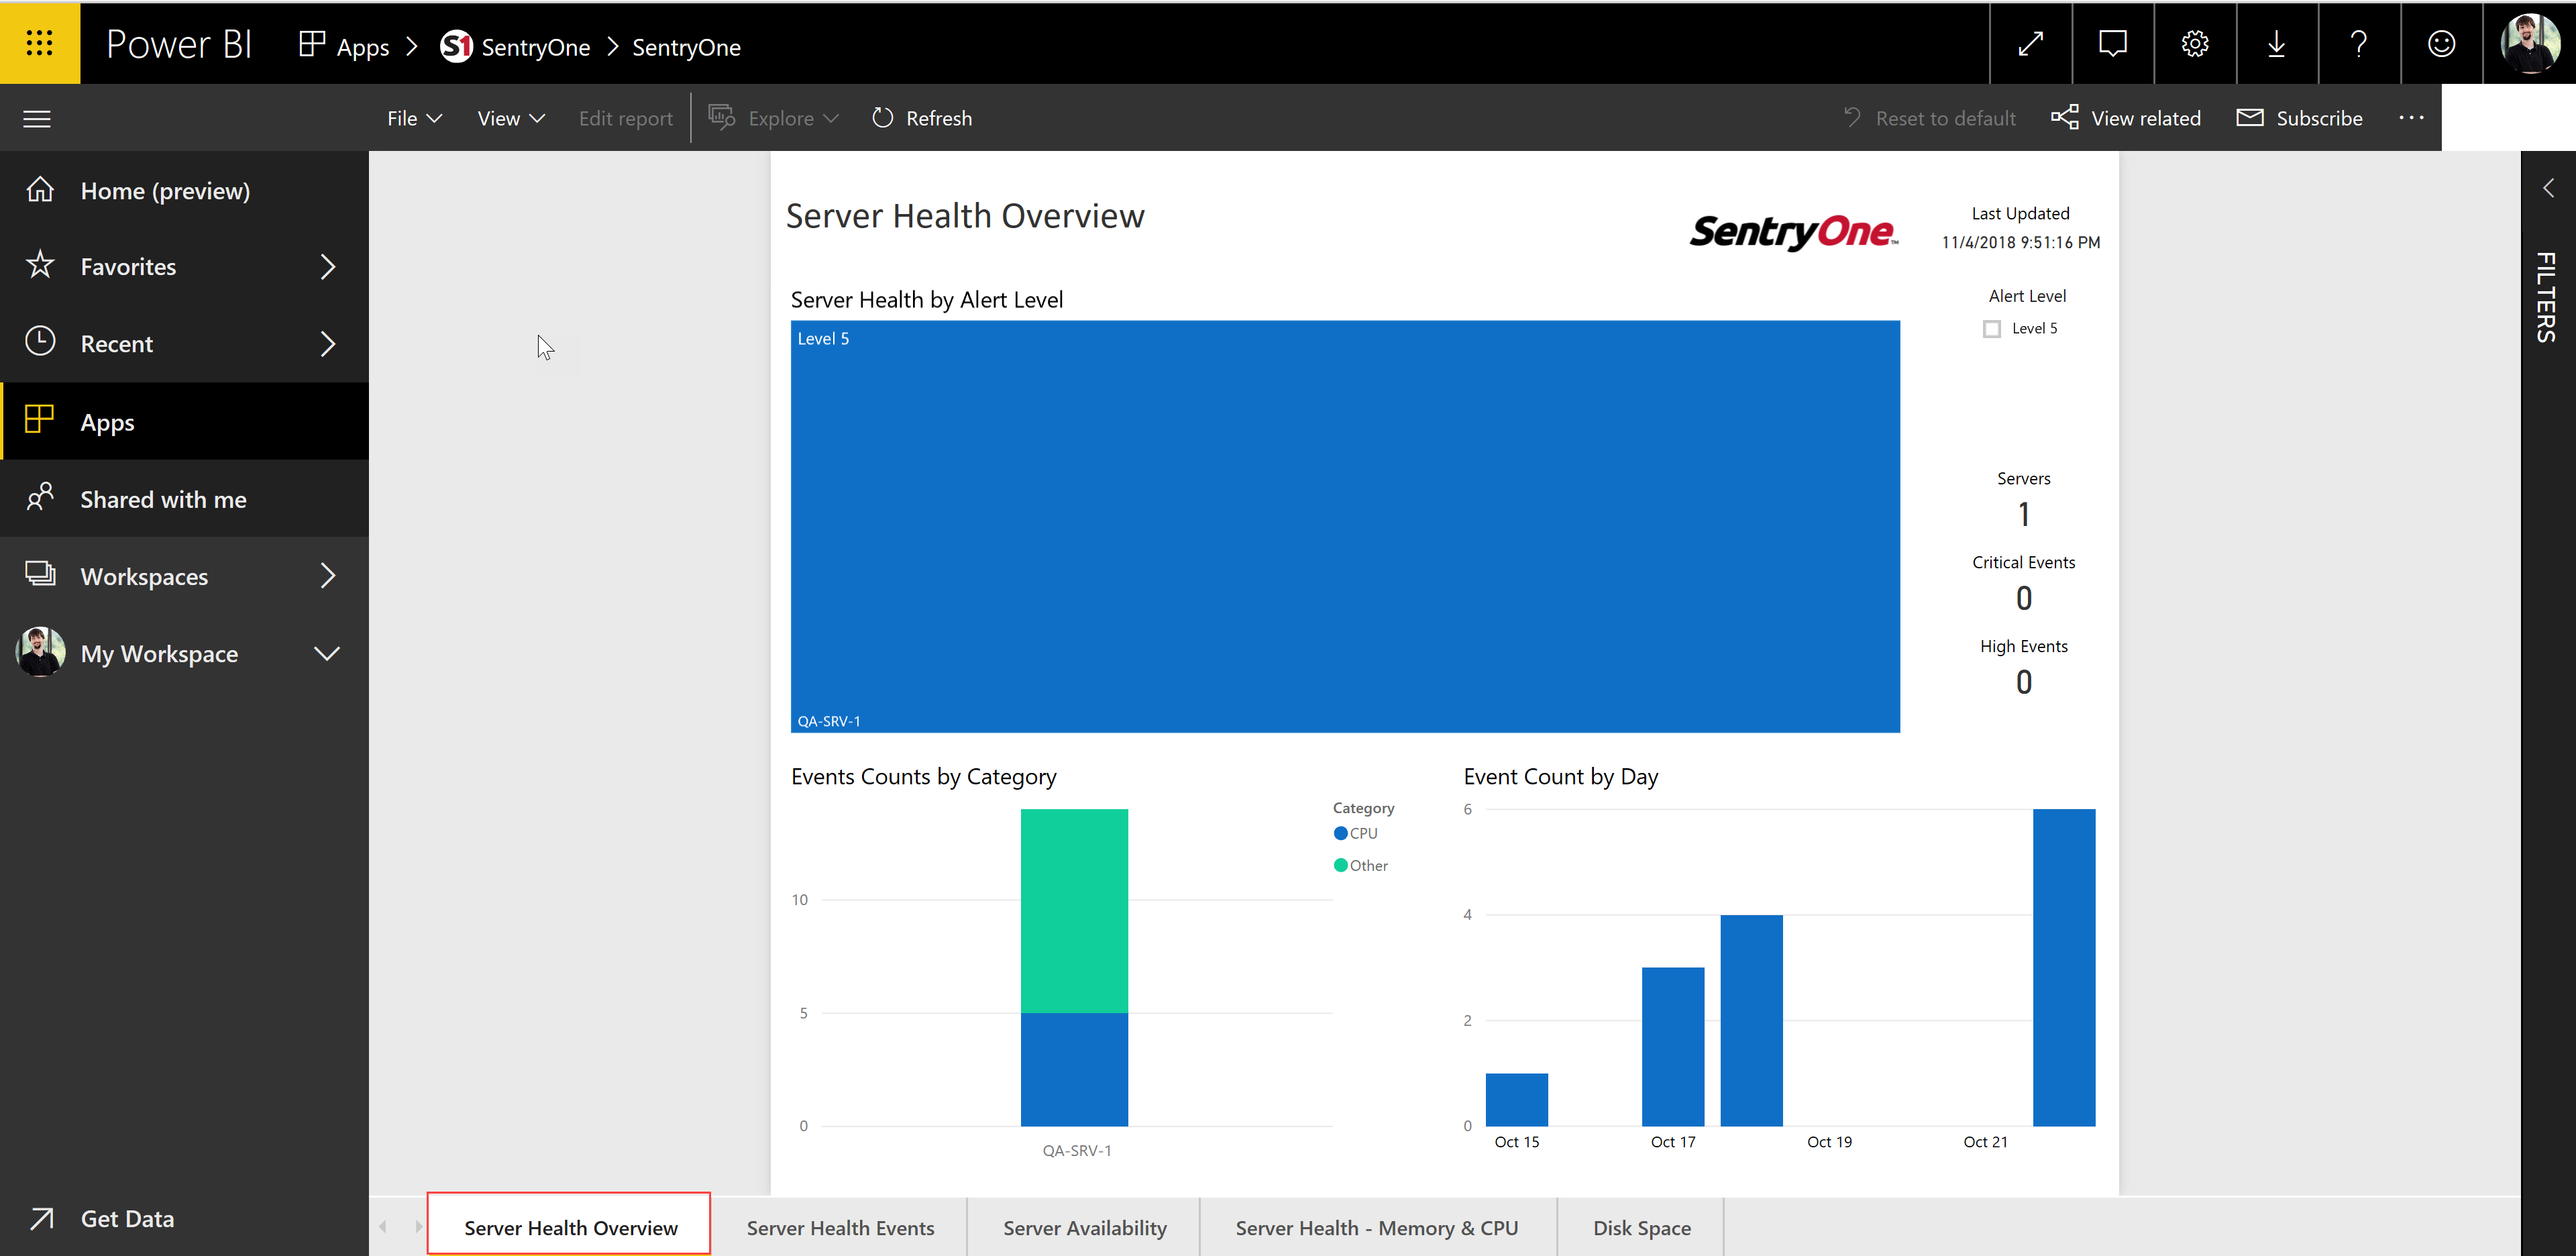 SentryOne Power BI app Server Health Overview